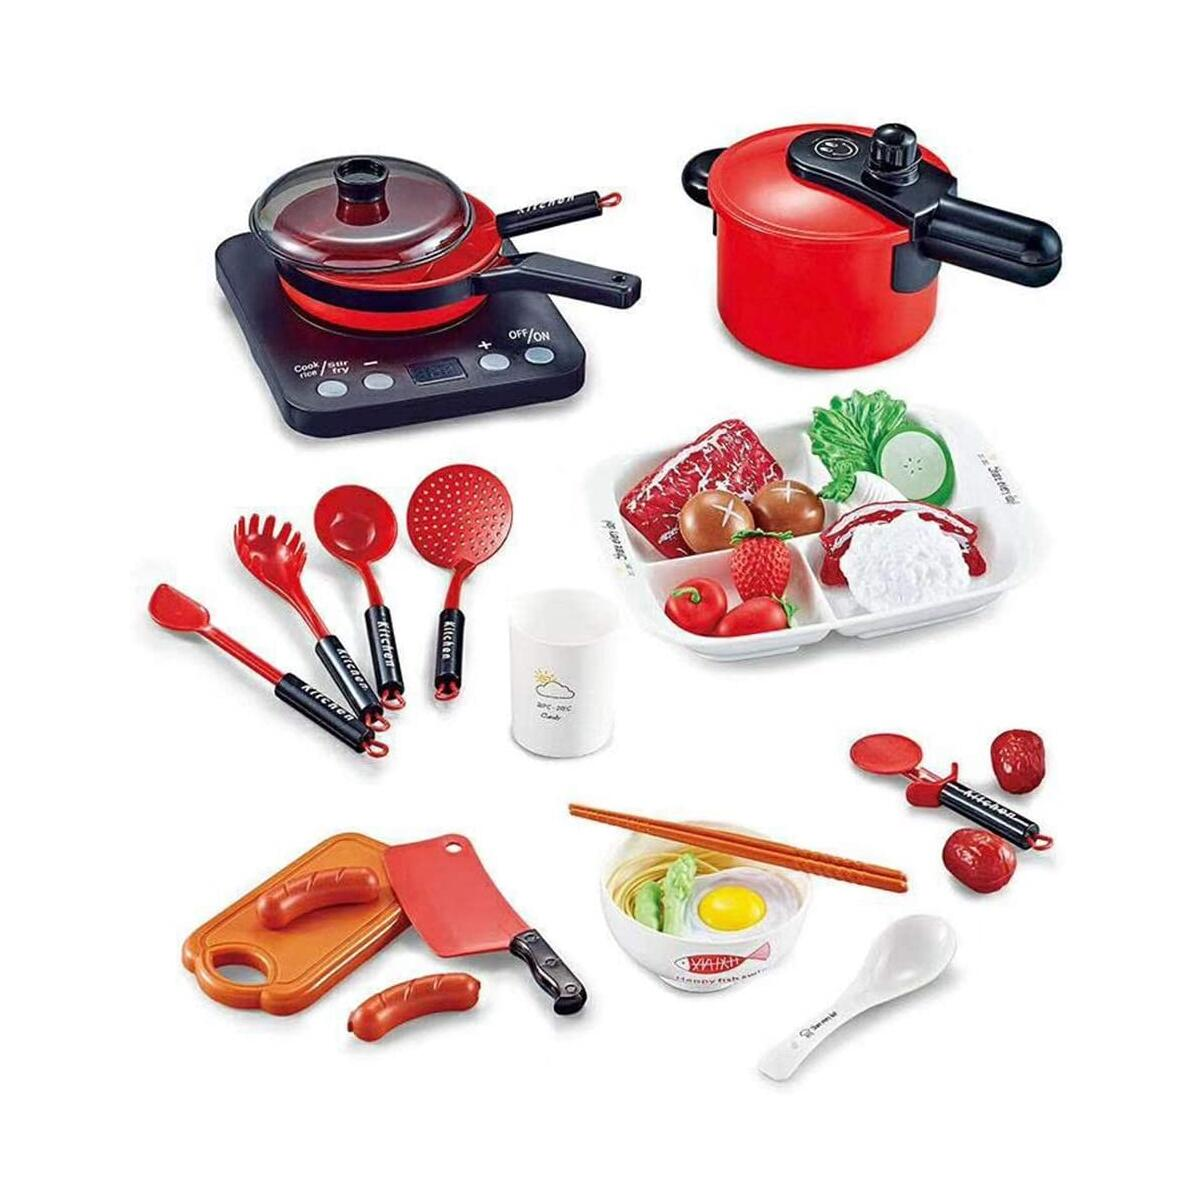 WISHTIME Kids Kitchen Accessories Playset, Pretend Play Cooking Set, Toy Pots N Pans, Cookware, Utensils, Vegetables, Gift for 3 4 5 Years Old Baby Infant Toddlers Boys Girls Children